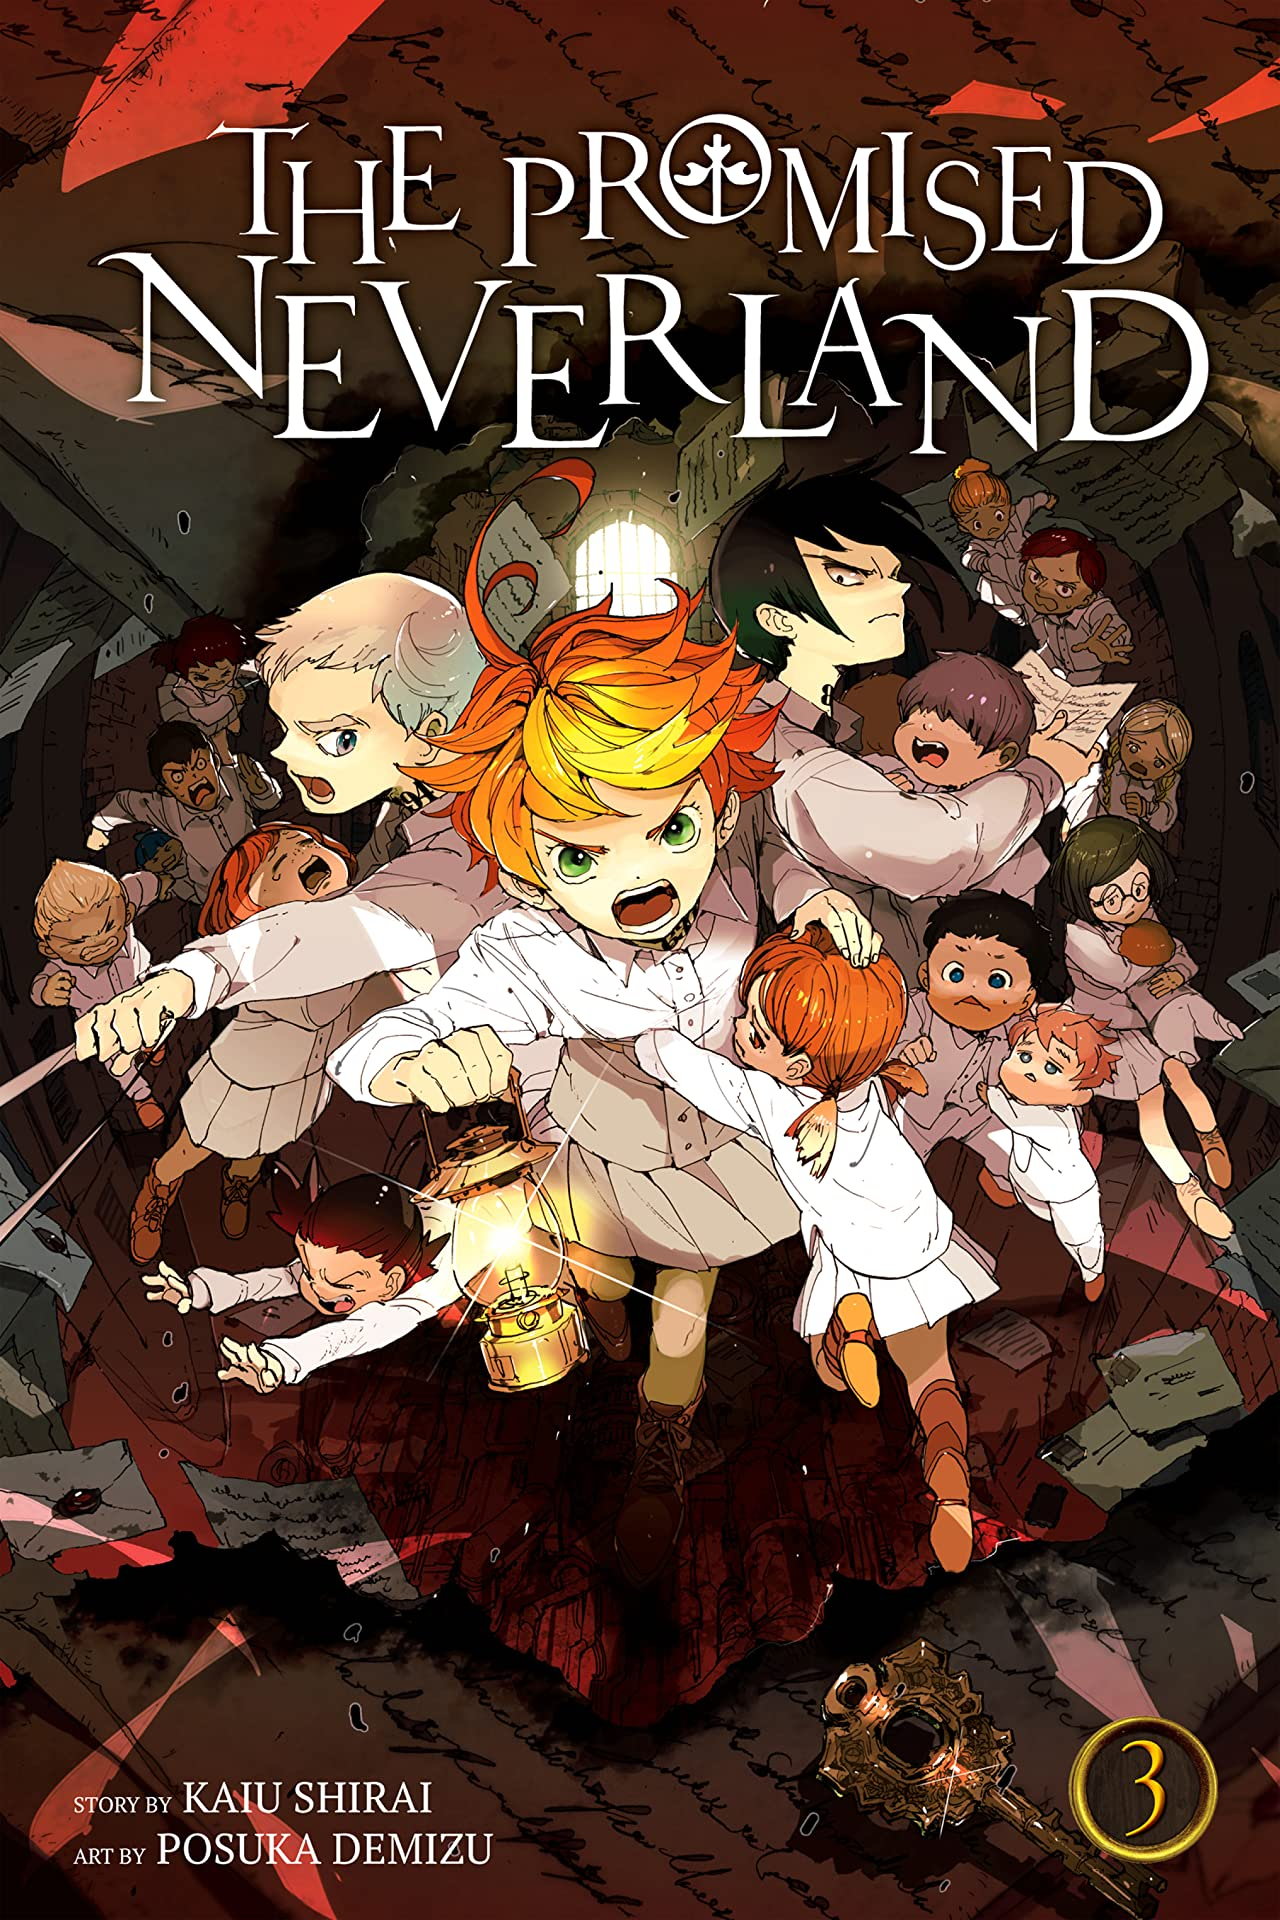 The Promised Neverland Vol. 3